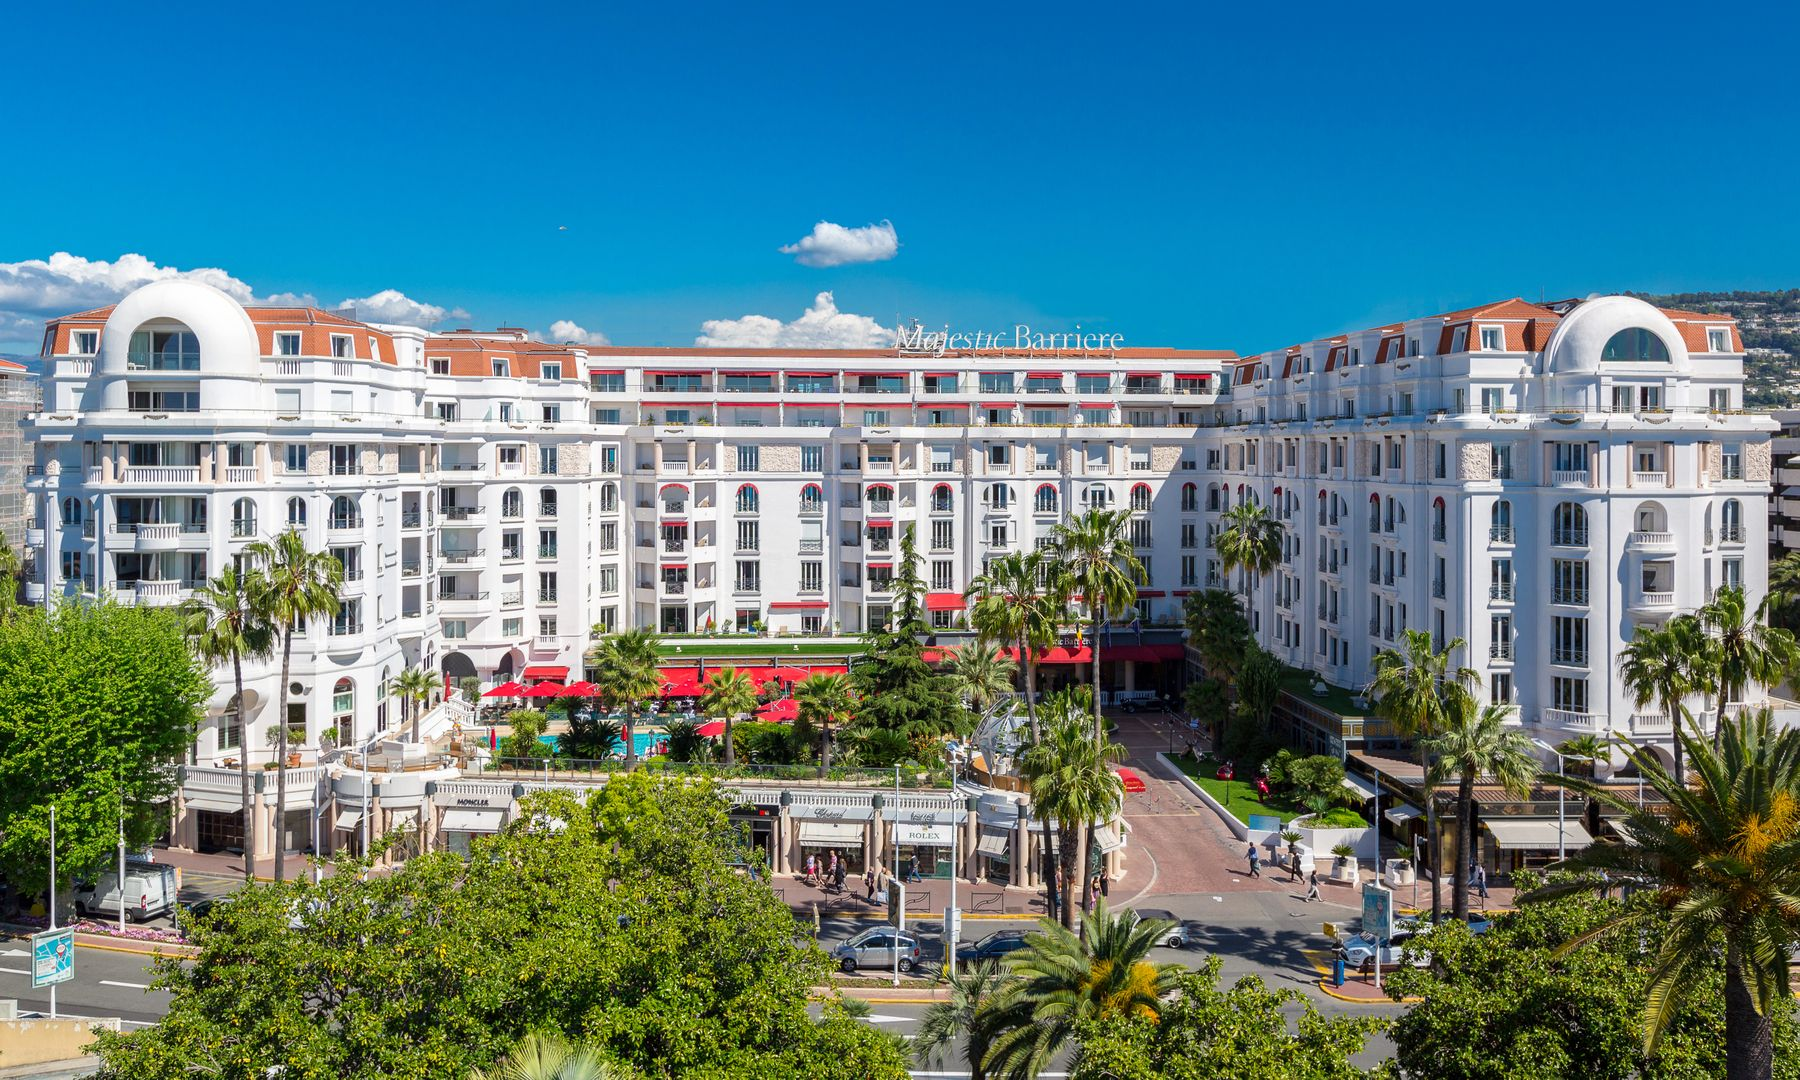 Hotel Barriere Le Majestic Cannes - Cannes